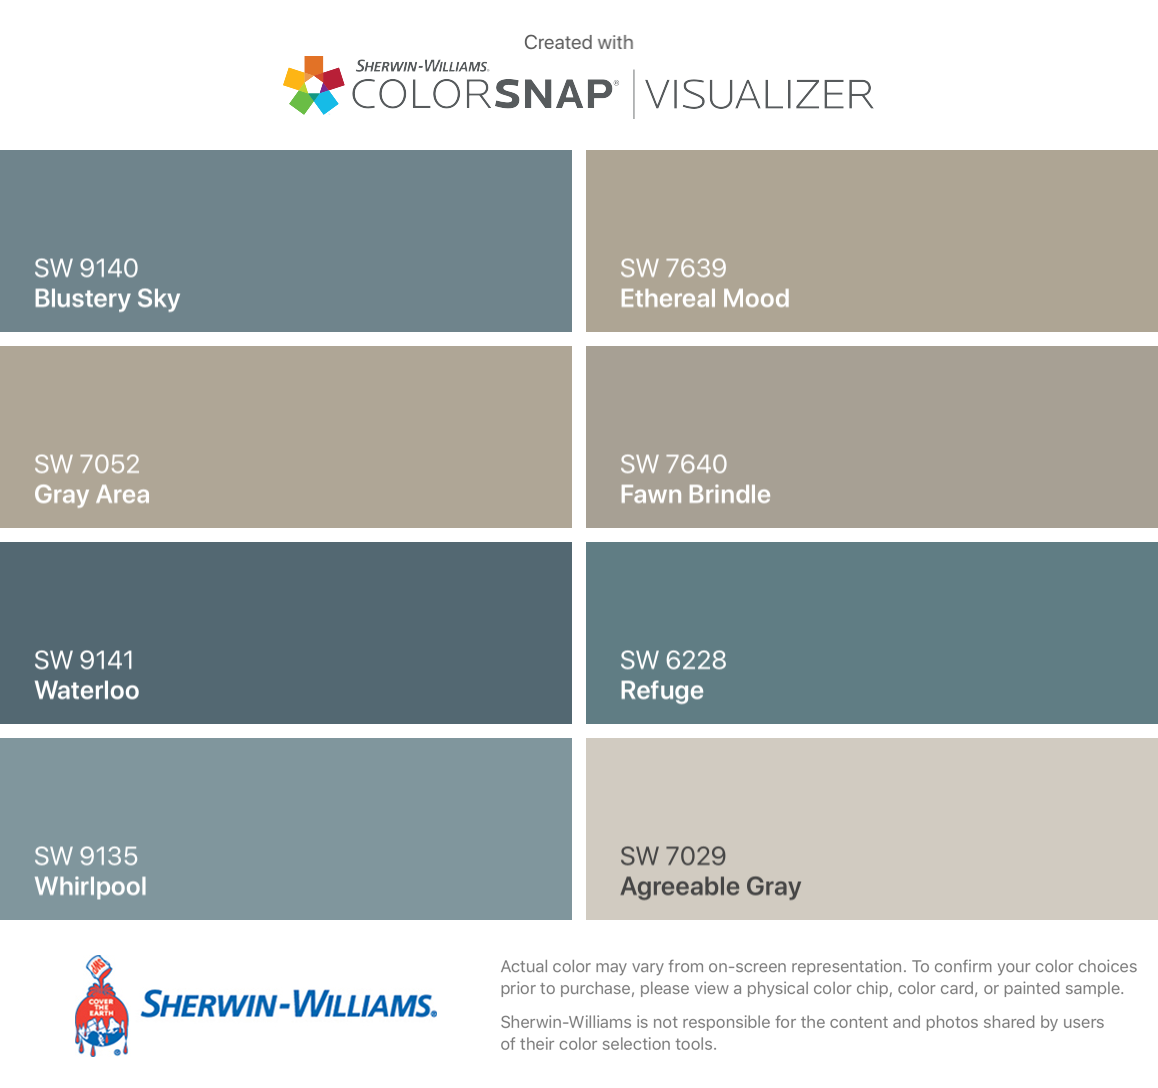 I Found These Colors With Colorsnap Visualizer For Iphone By Sherwin Willi Exterior Paint Colors For House Sherwin Williams Paint Colors Paint Colors For Home